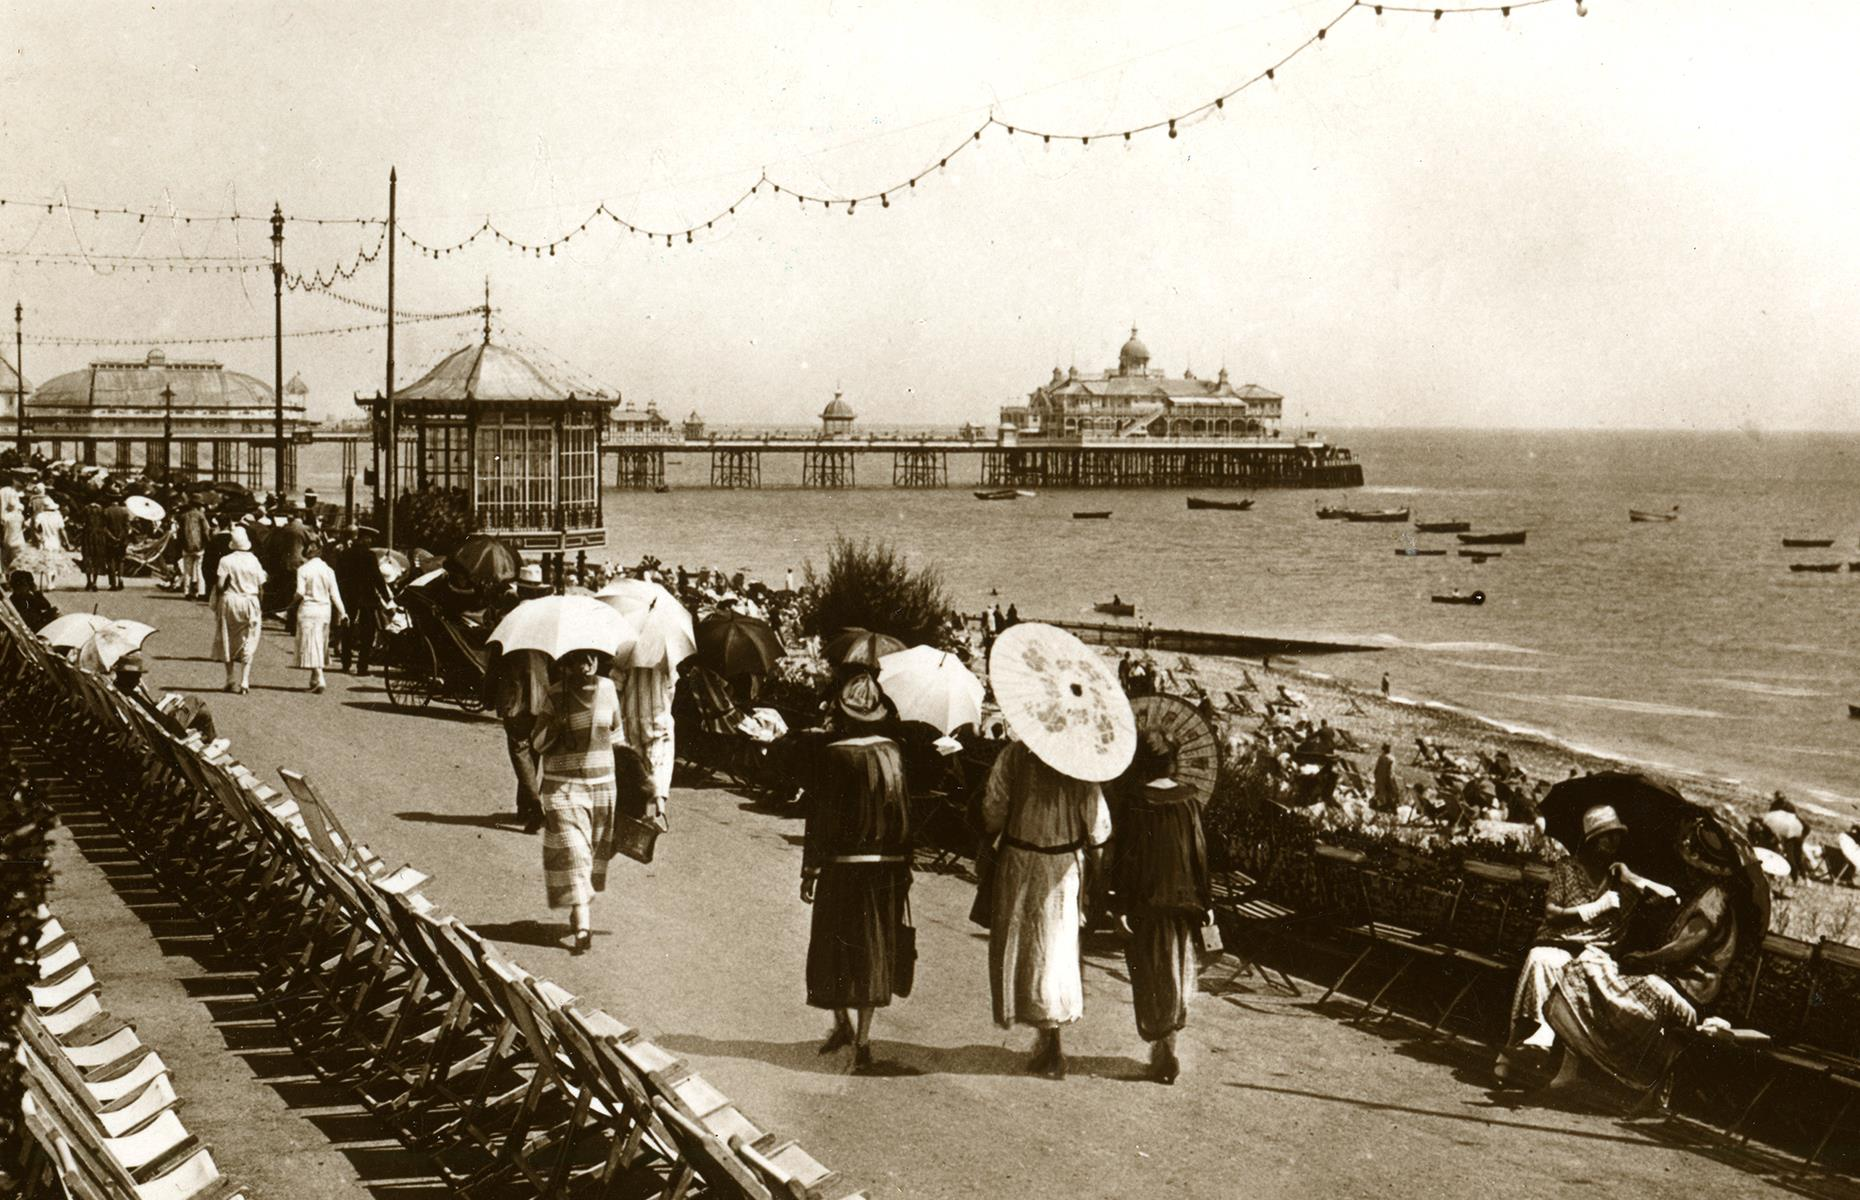 Slide 25 of 35: As train services poured passengers into Britain's seaside towns, the post-war and post-pandemic years saw major investments along the UK's coast. Previously neglected spots such as Eastbourne and Blackpool were transformed into glittering seaside resorts with hotels and amusement-packed beaches. Vacationers are seen here in the 1920s, wandering Eastbourne's ocean promenade, its pier rising in the background.